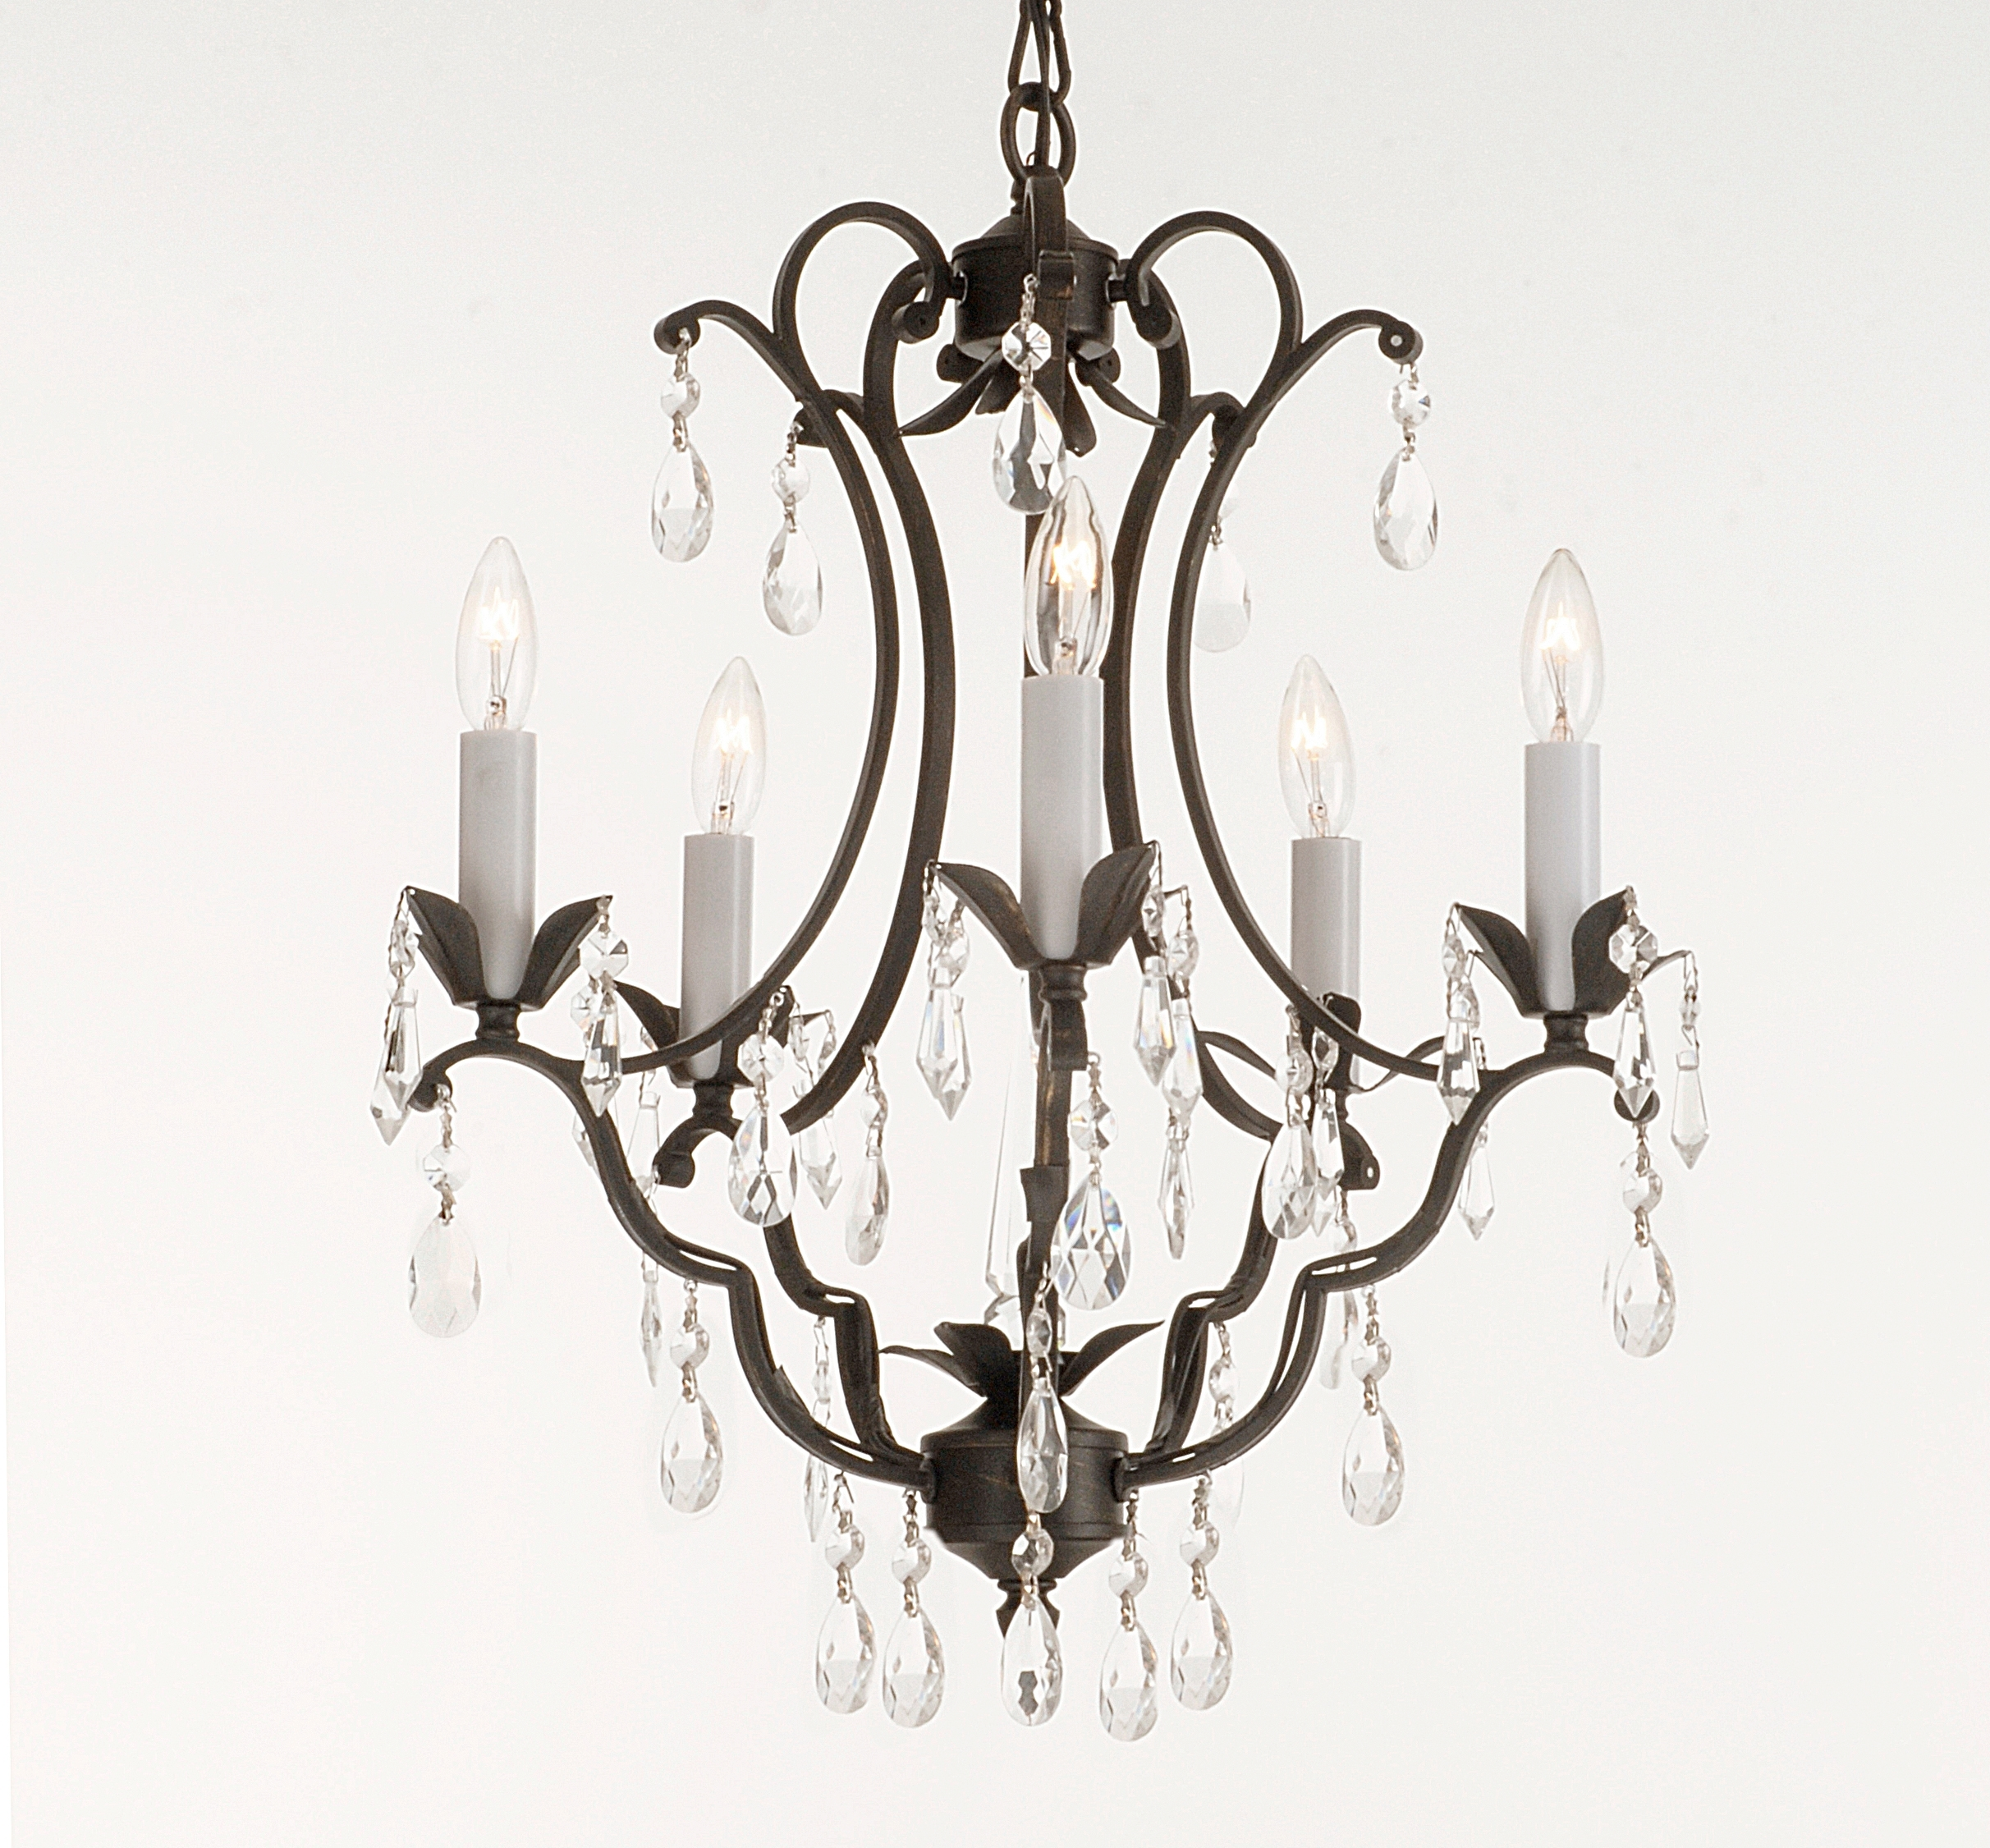 Modern Wrought Iron Chandeliers With Regard To Most Current Light : Furniture Vintage Look Modern Black Wrought Iron Chandeliers (View 8 of 15)